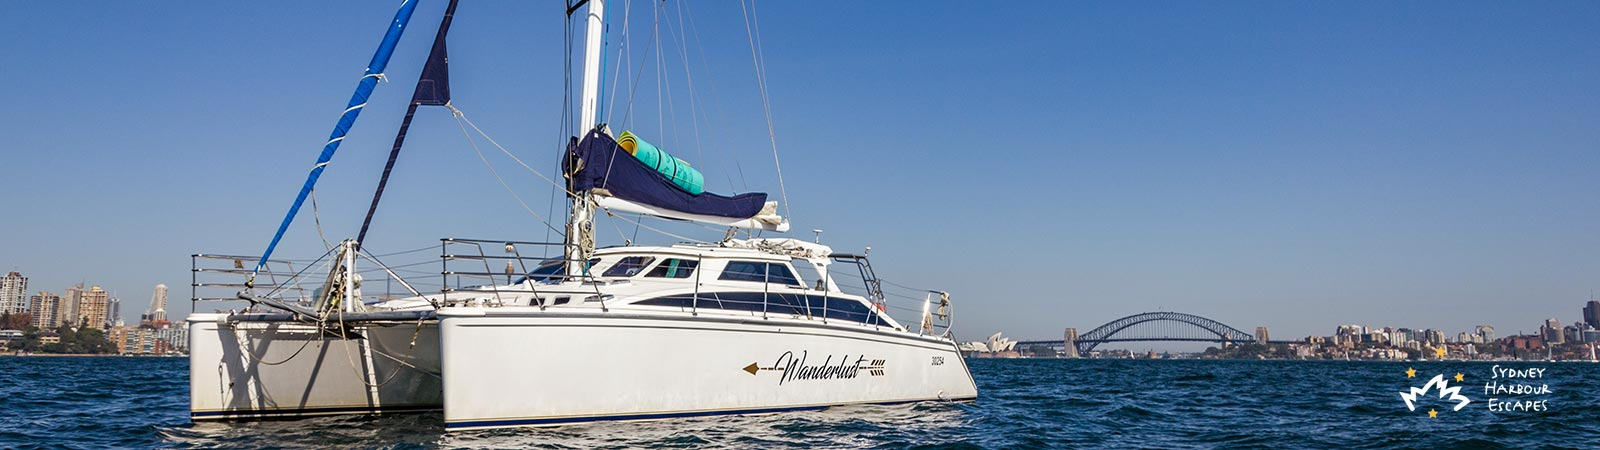 Wanderlust Anchored on Harbour